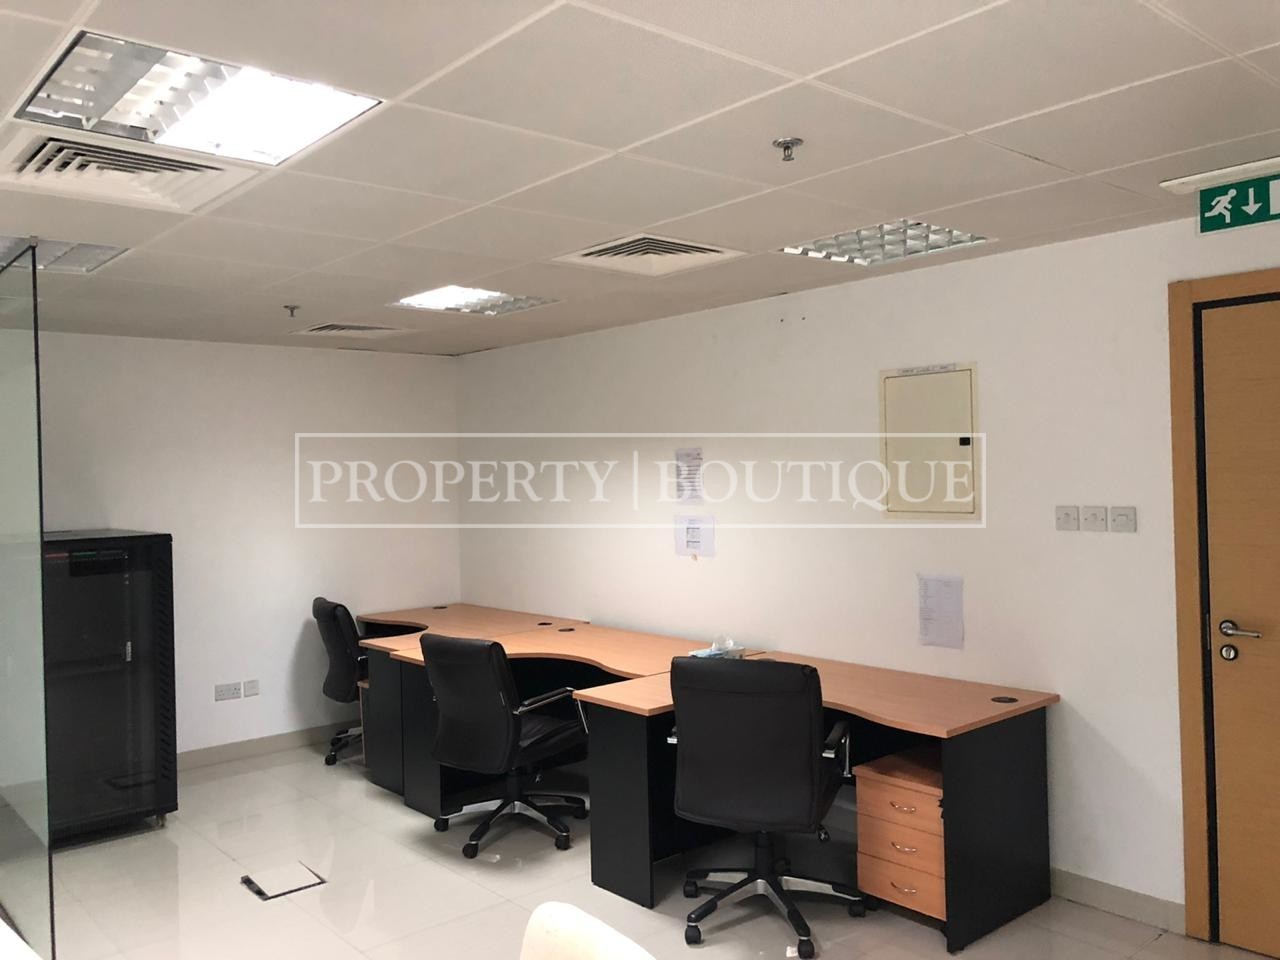 Fitted with partitions | Partially Furnished | JBC4 - Image 4